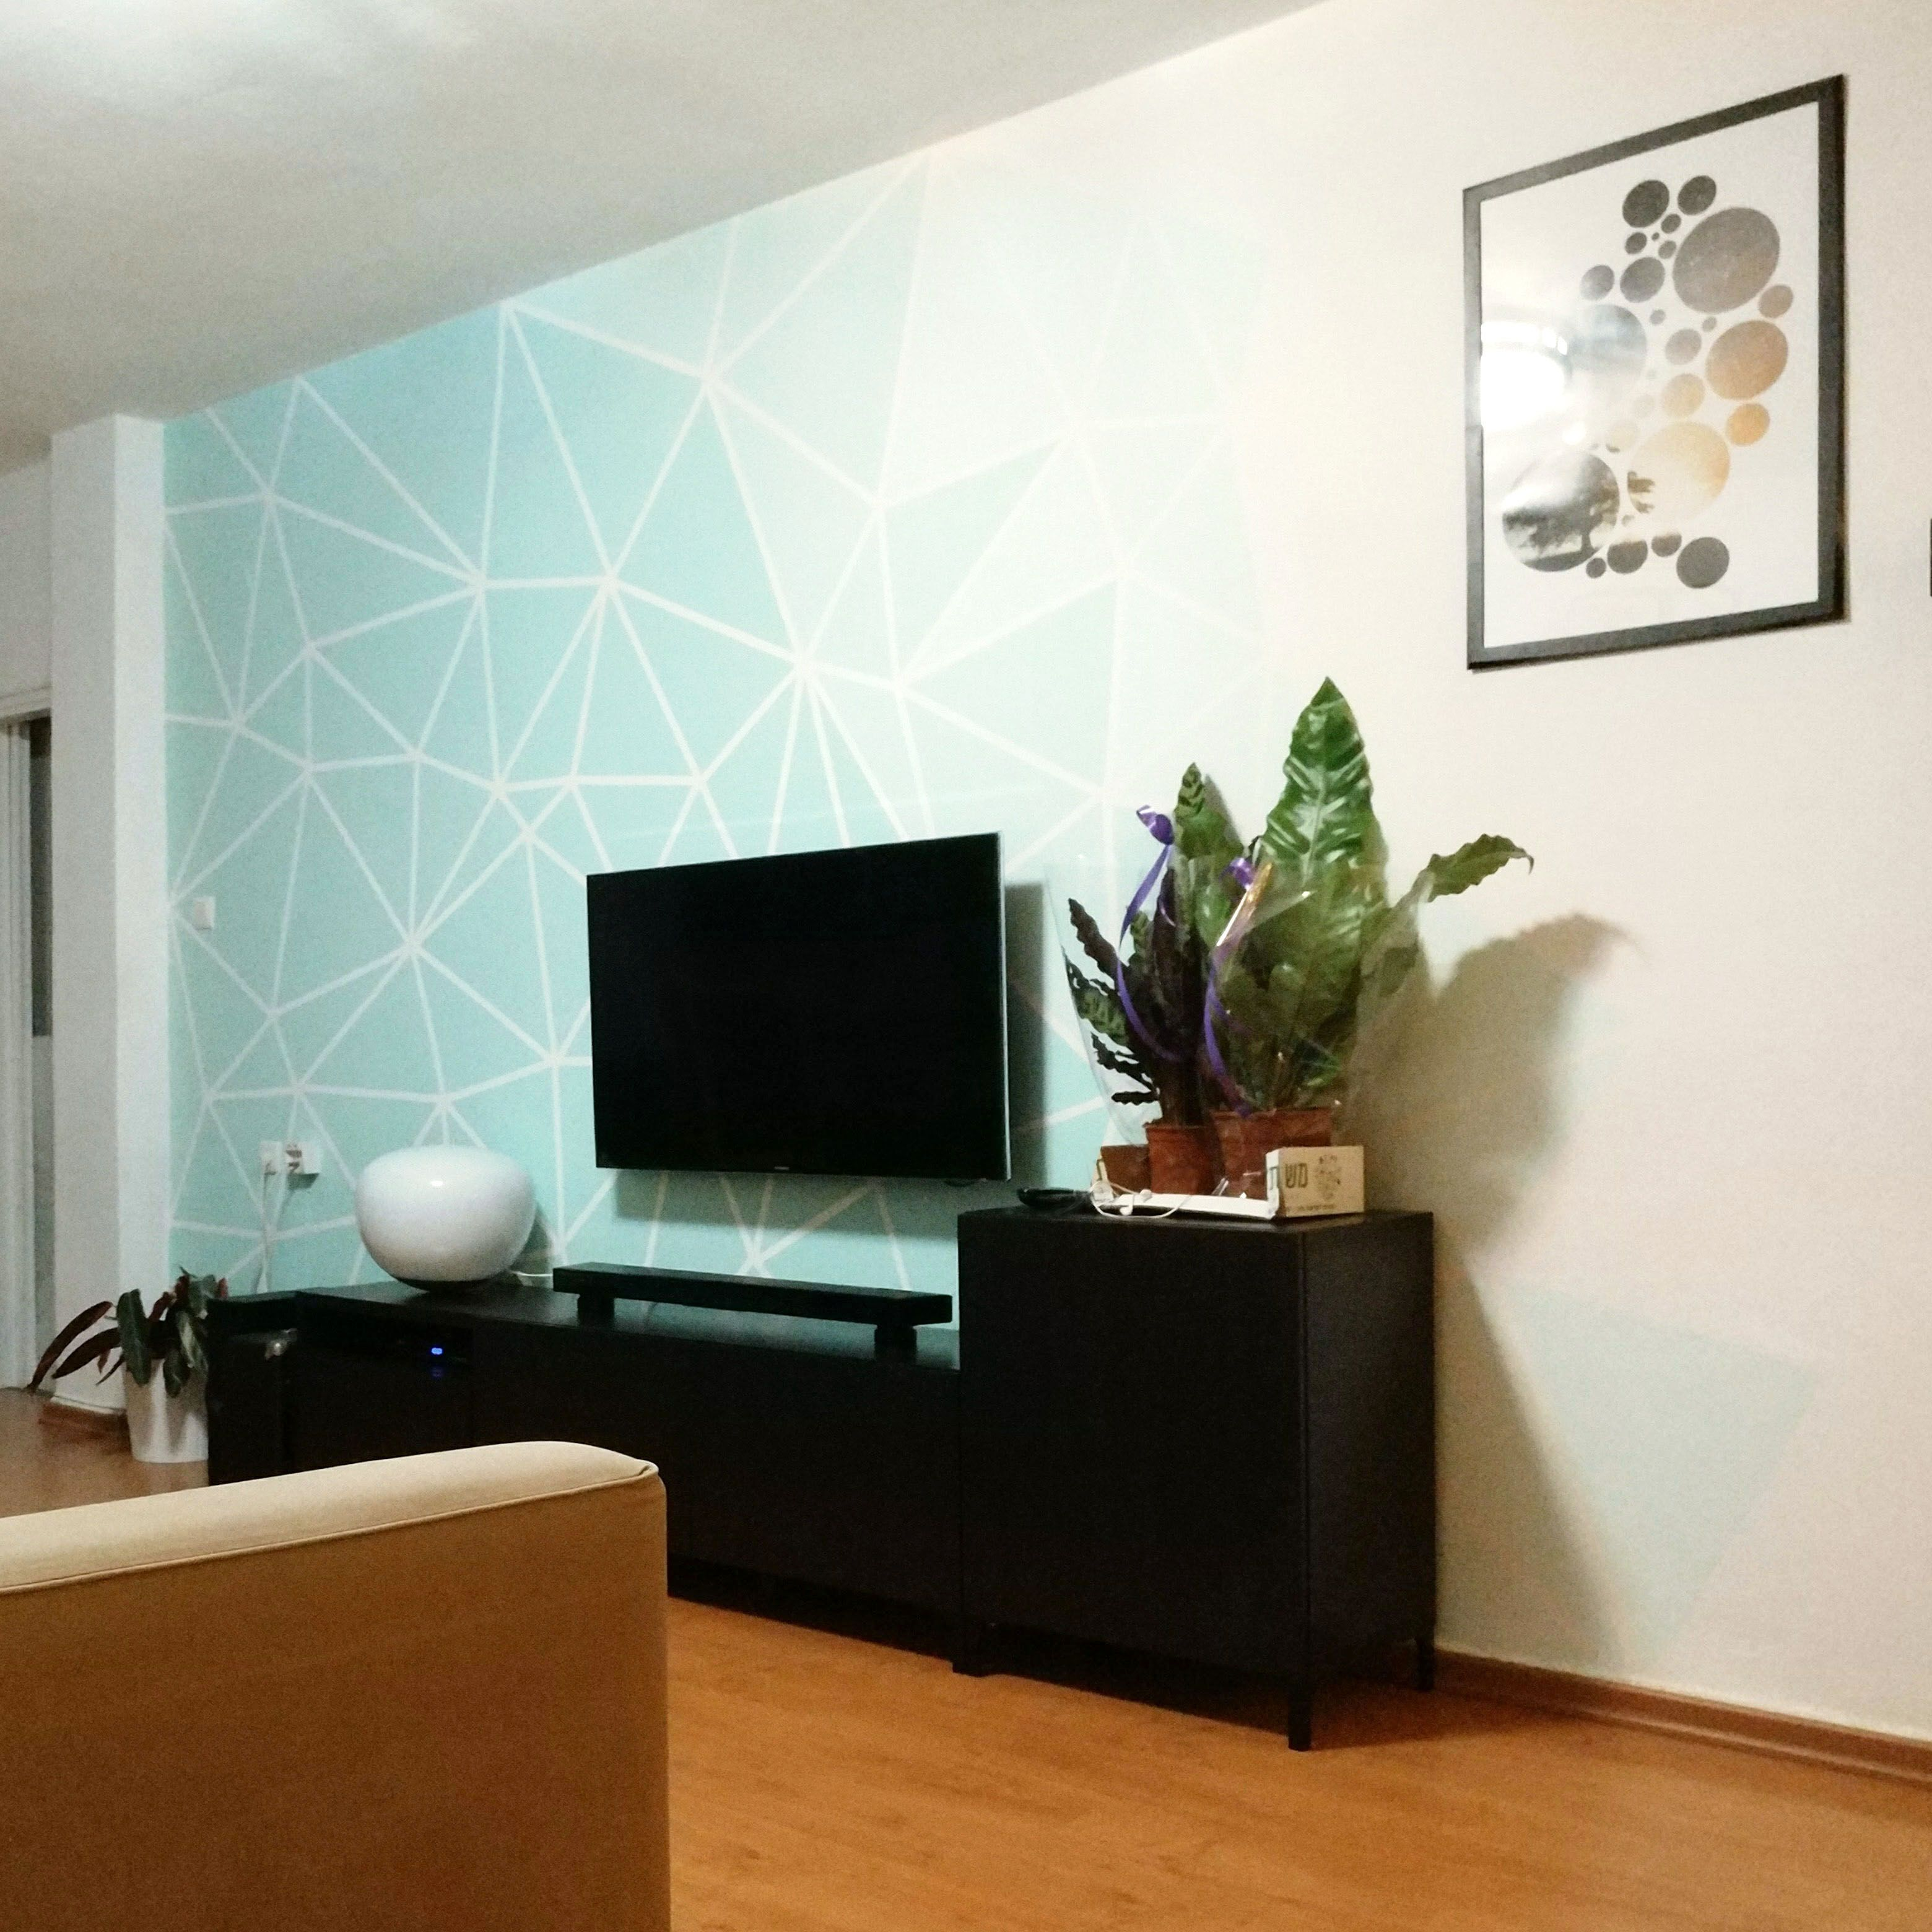 Tv Wall Diy Faux Wallpaper Home Decor Accent Wall Project On A